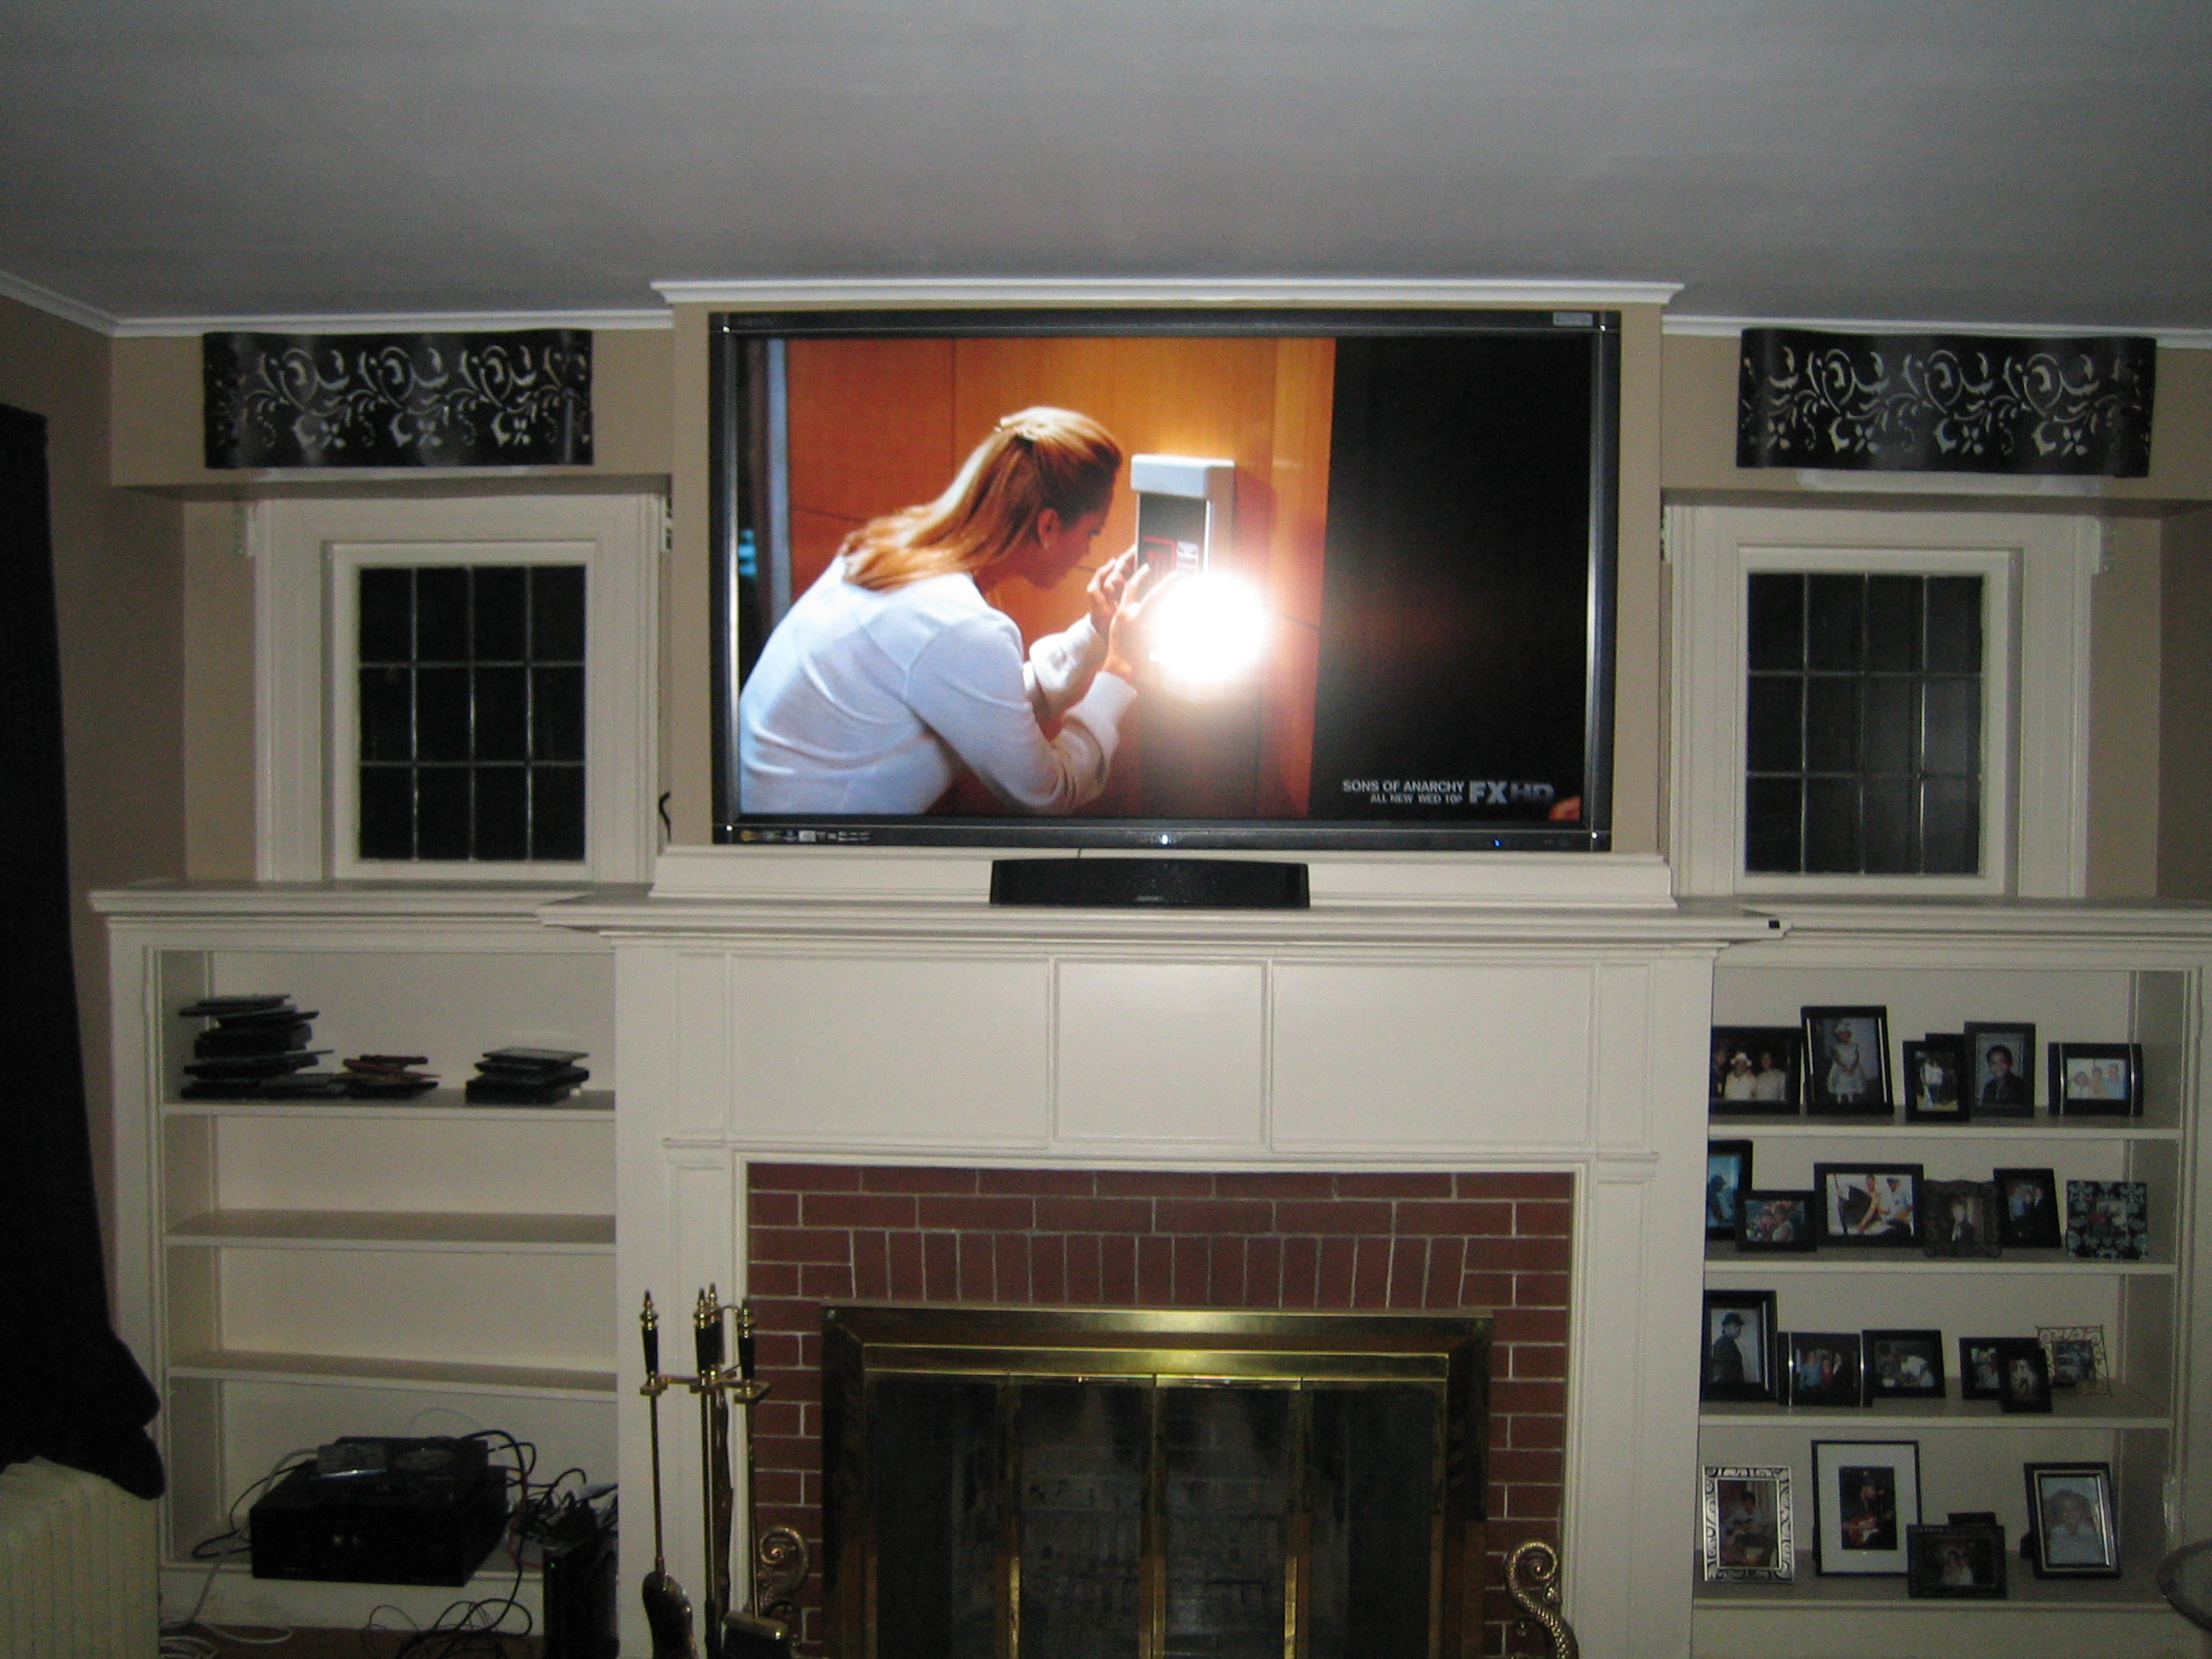 cheshire ct mount tv above fireplace home theater installation. Black Bedroom Furniture Sets. Home Design Ideas